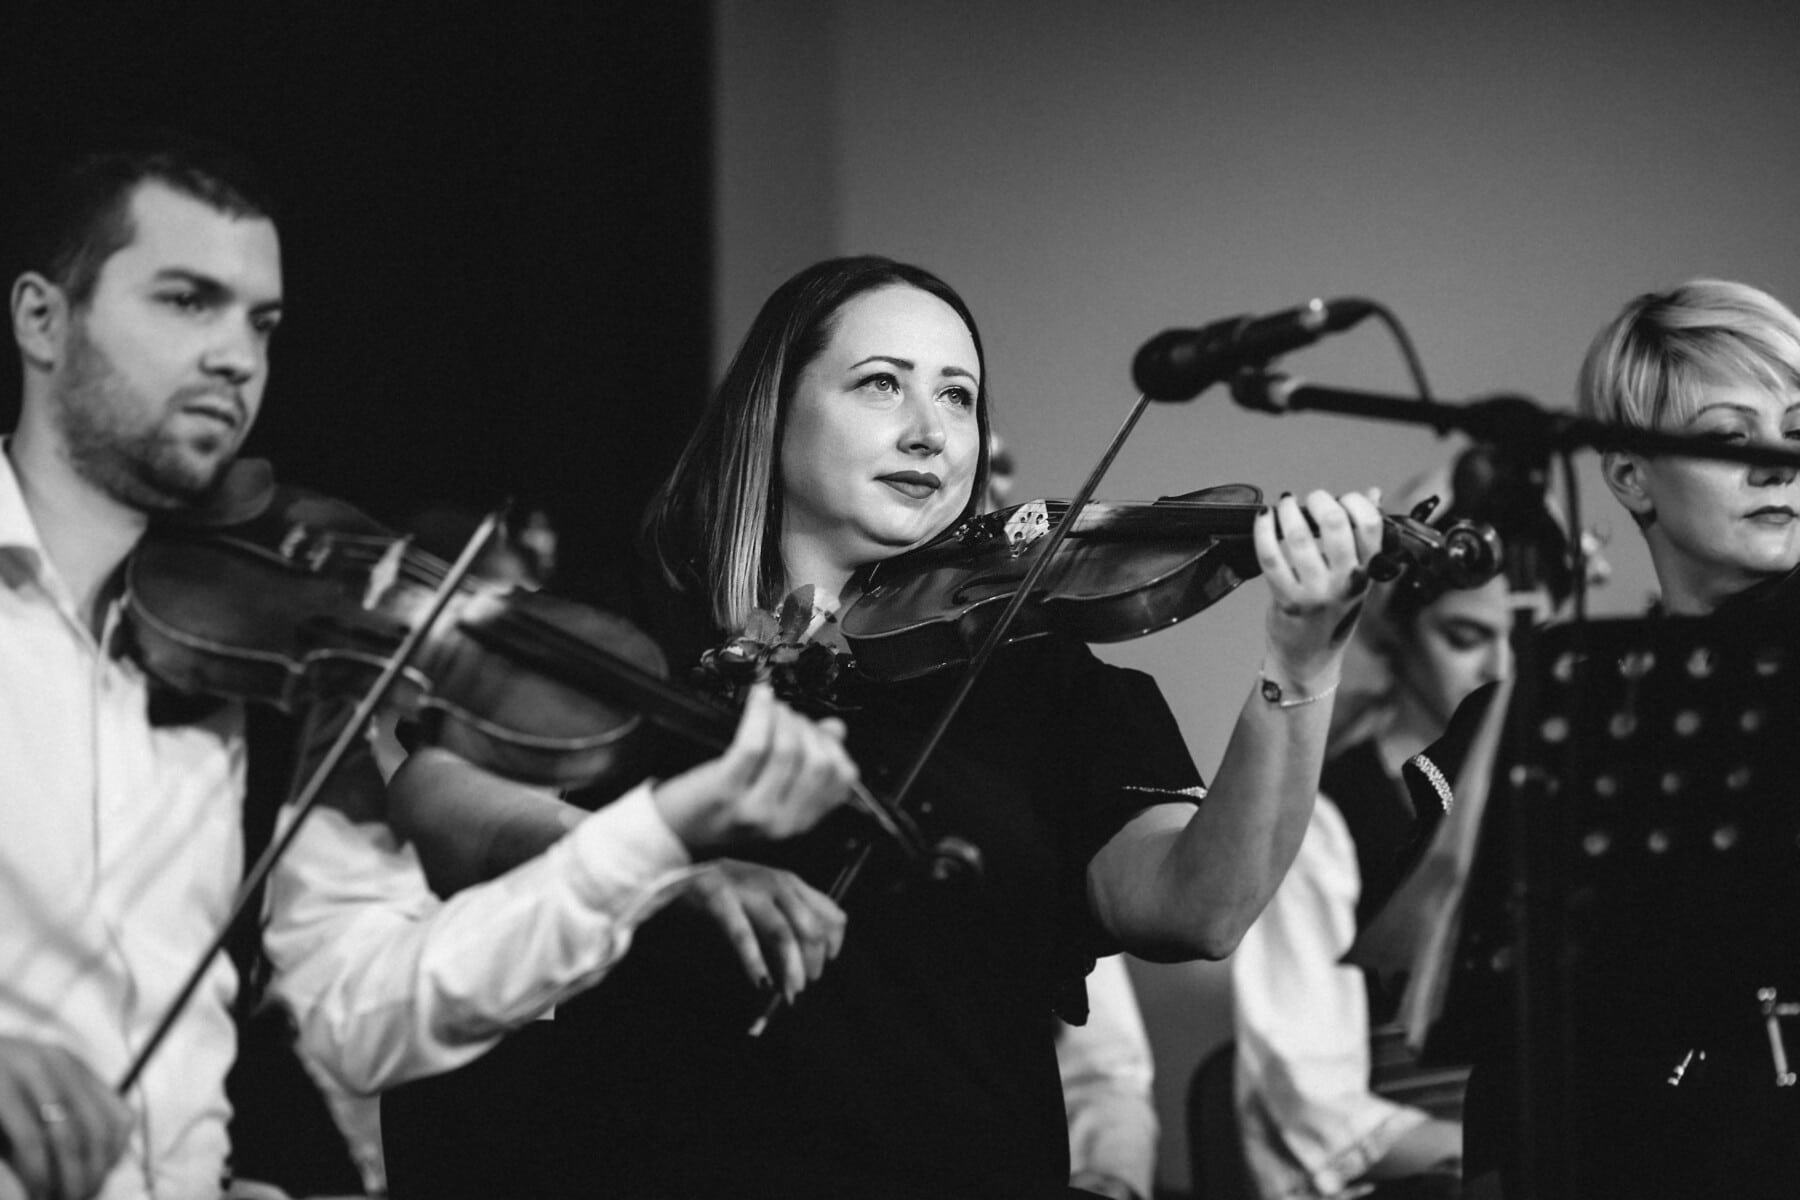 music, concert, classic, violin, orchestra, people, women, man, instrument, musician